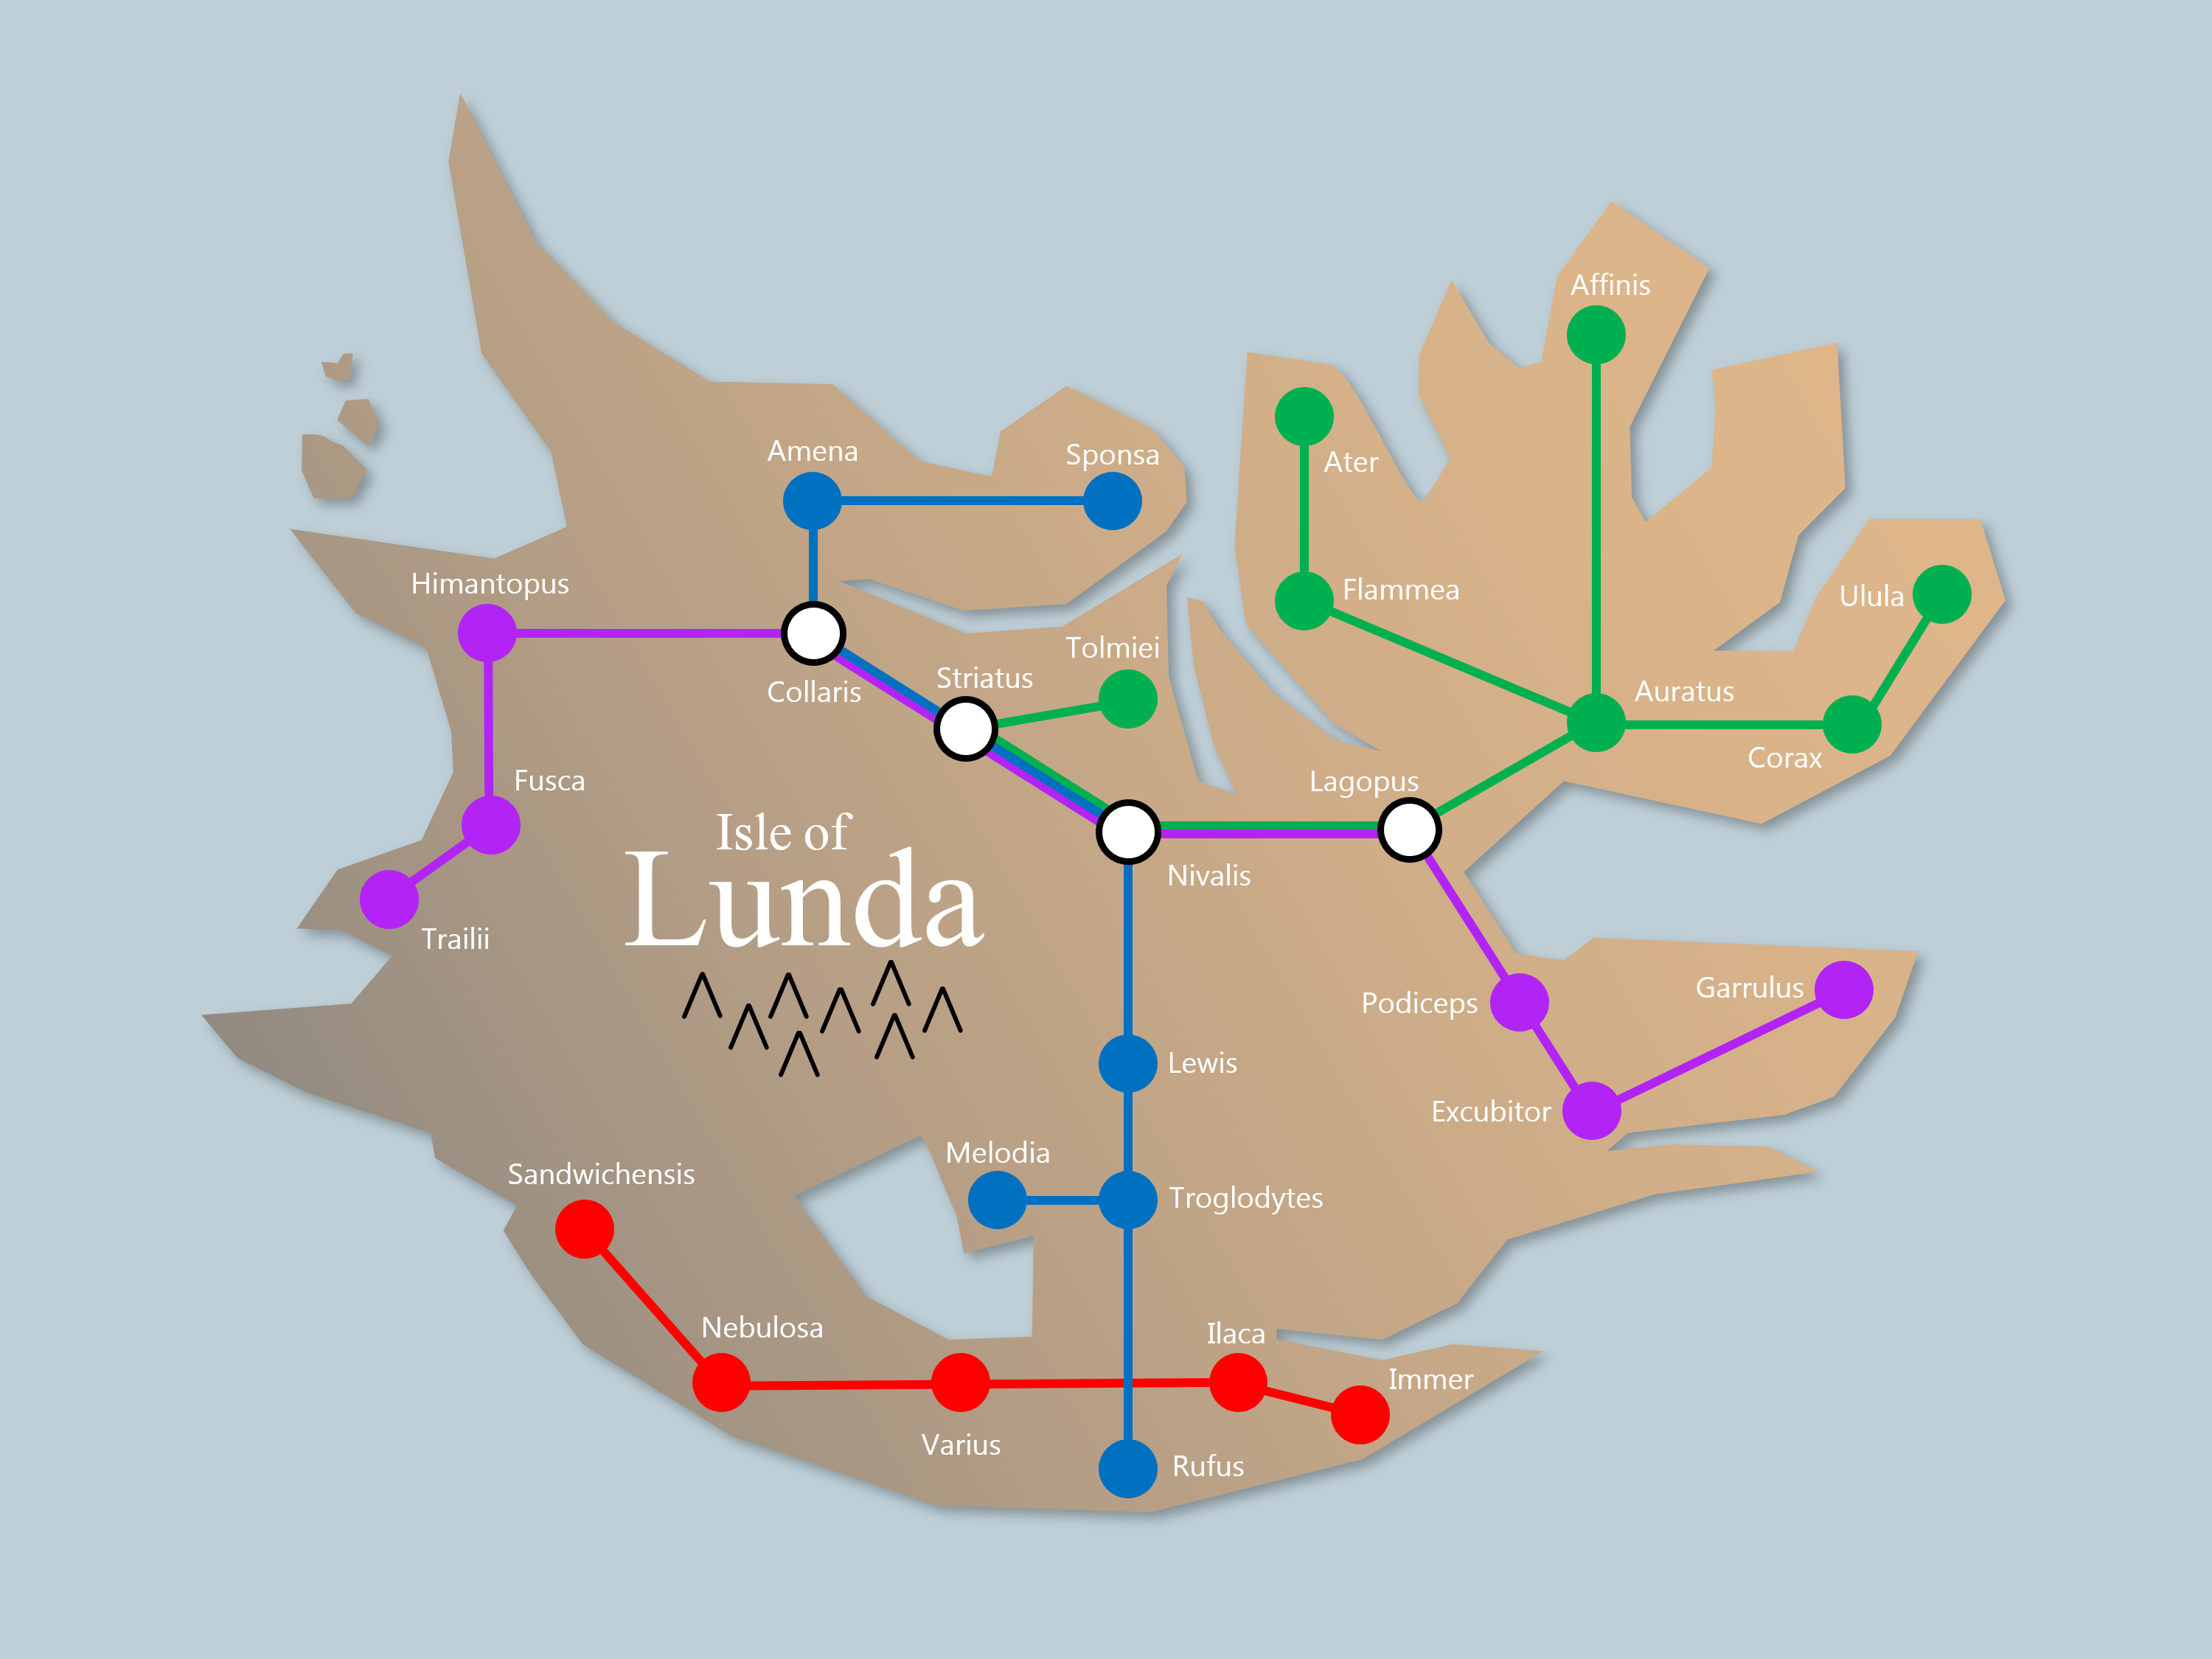 Custom Subway Map Creator.5 Minute Tutorial For Creating Custom Maps With Excel And Power Map